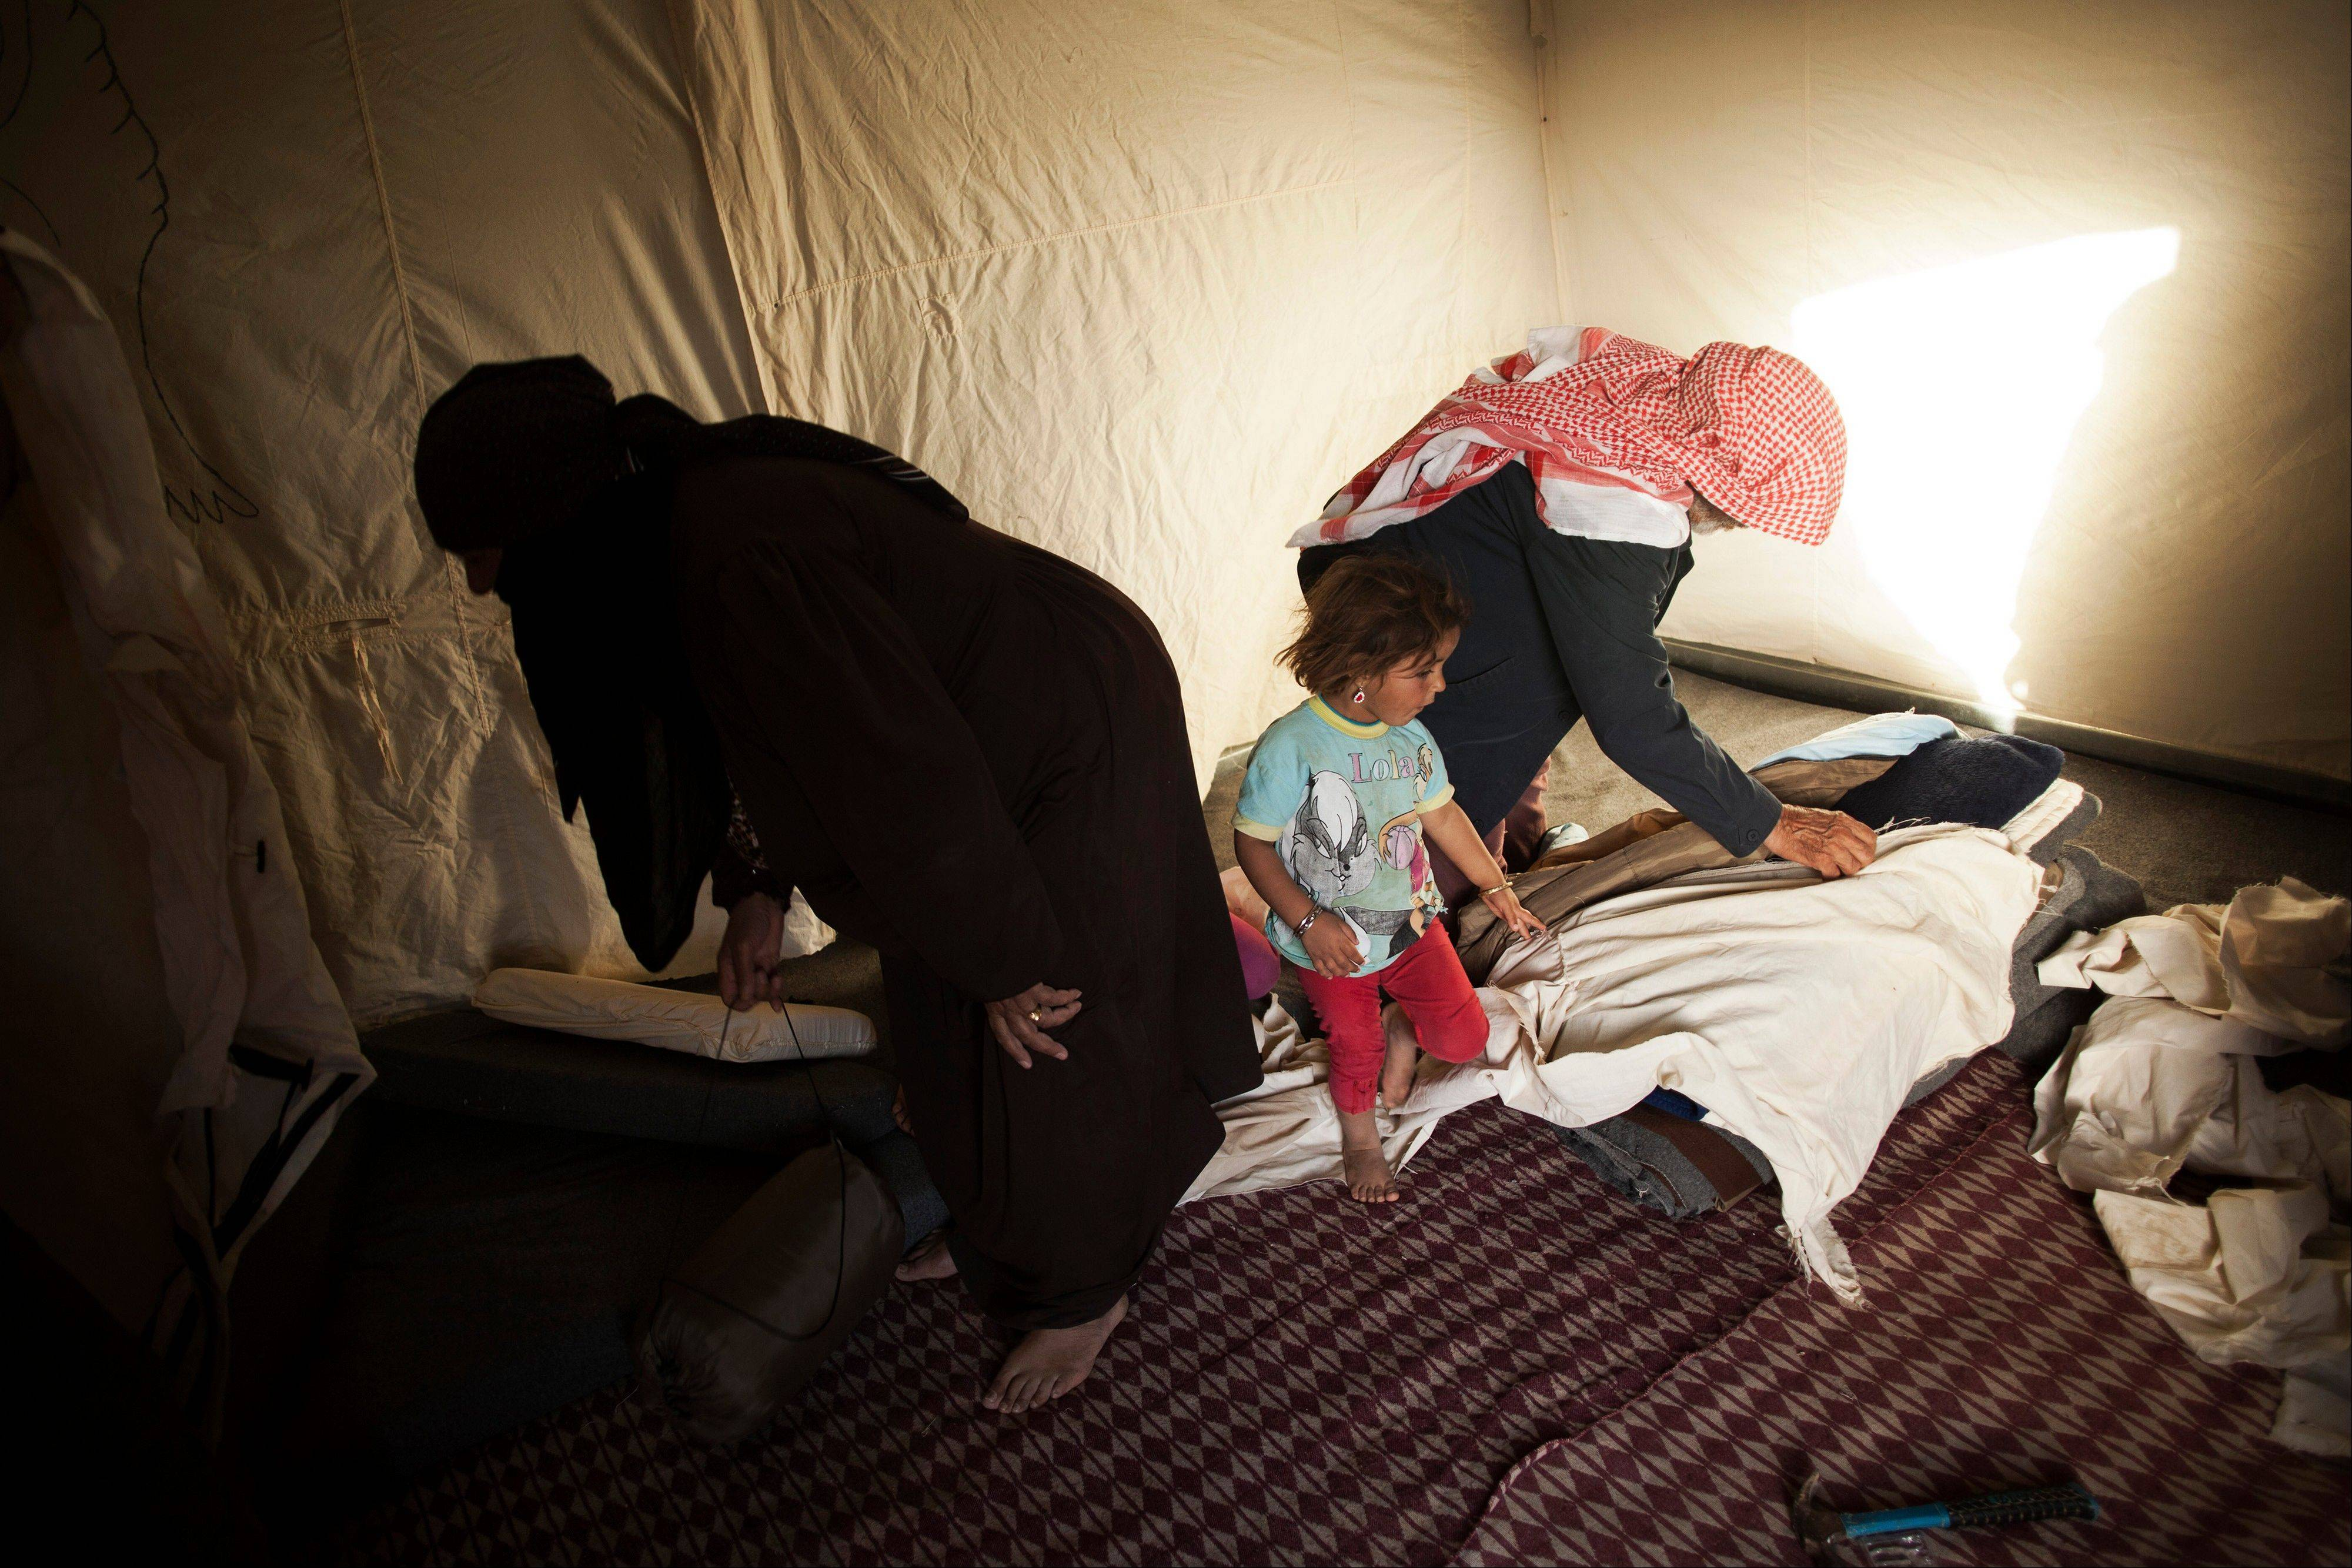 Syrian refugees work in their makeshift shelter while their granddaughter plays around them at the Zaatari refugee camp near the Syrian border in Jordan.